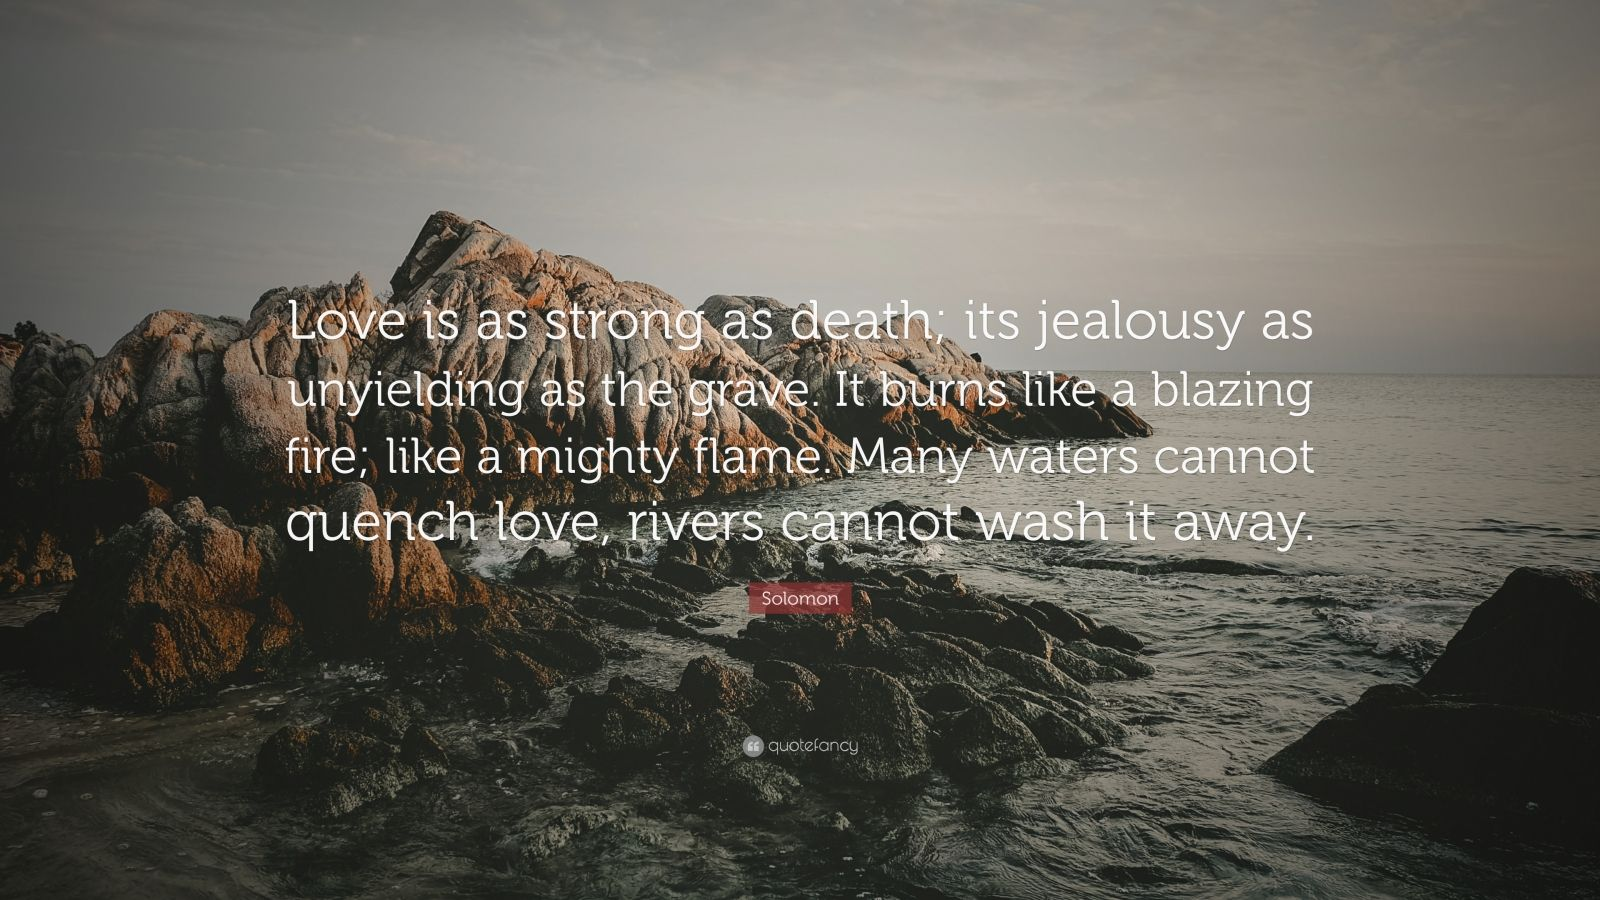 """Solomon Quote: """"Love is as strong as death; its jealousy as unyielding as the grave. It burns like a blazing fire; like a mighty flame. Many waters cannot quench love, rivers cannot wash it away."""""""